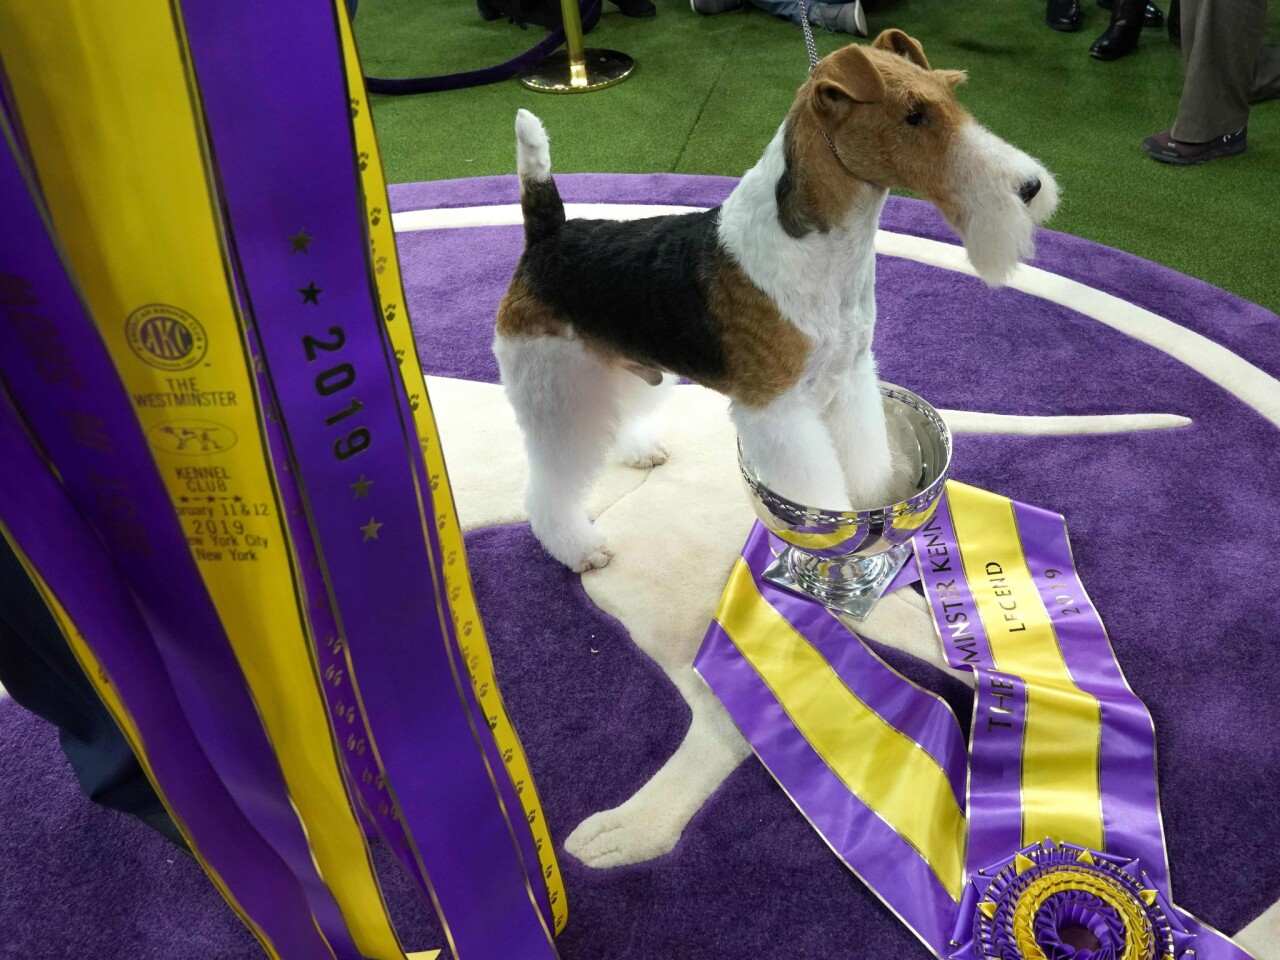 Best in Show | The 143rd Westminster Kennel Club Dog Show in